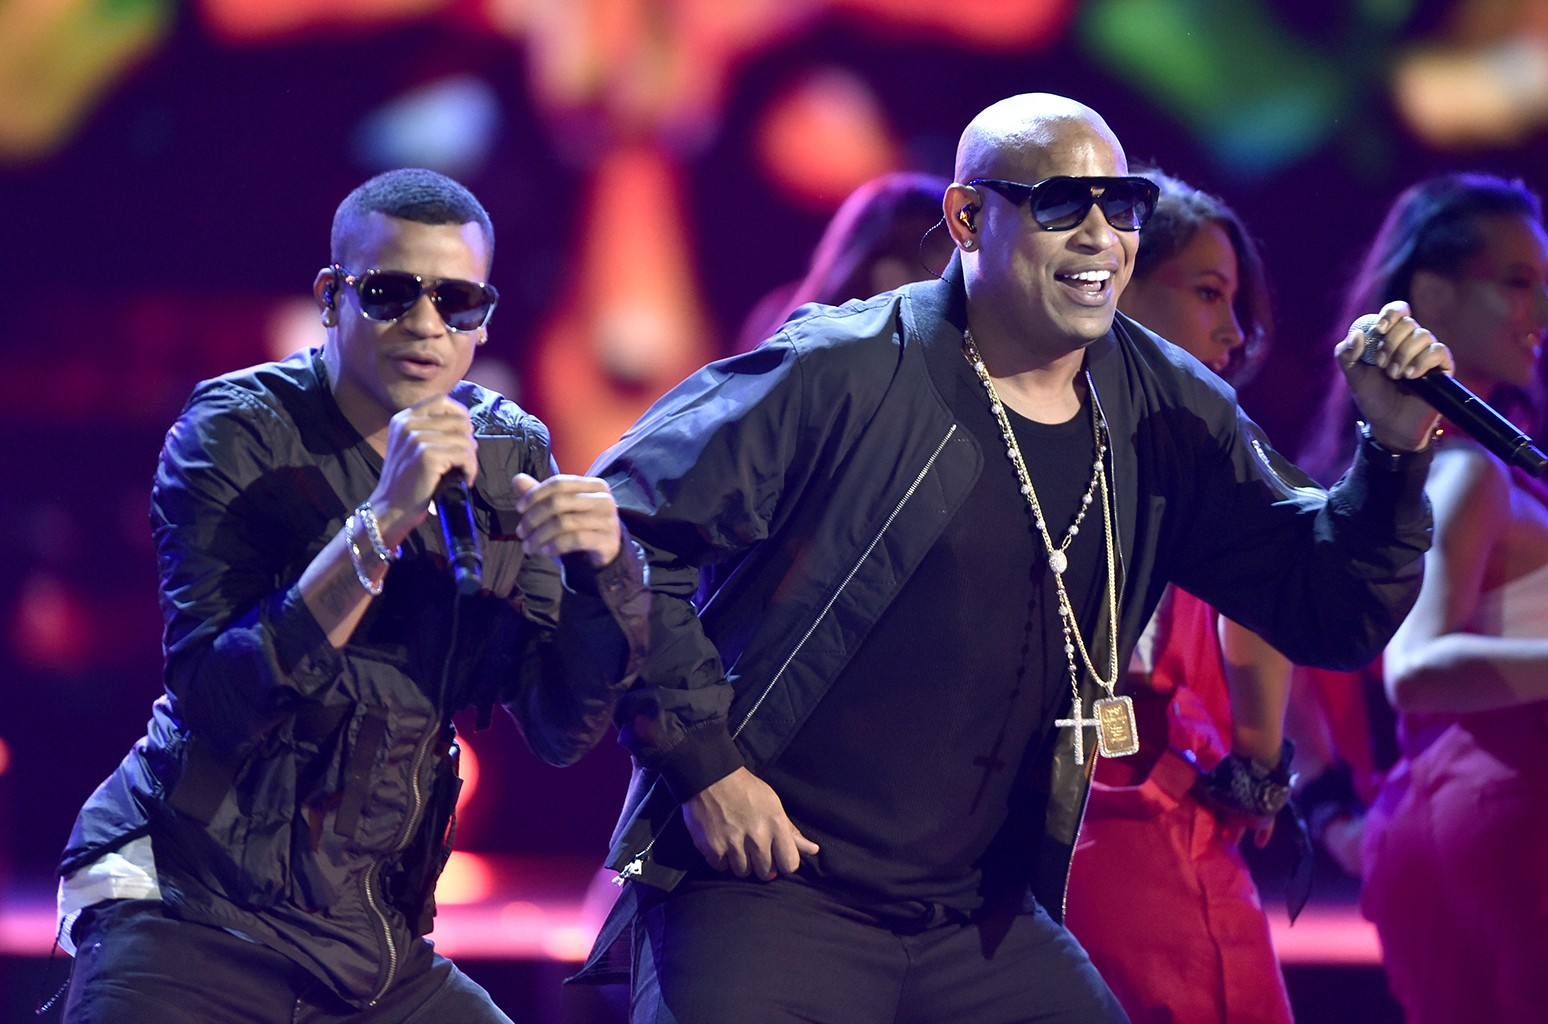 Gente De Zona perform during the 2016 Latin American Music Awards